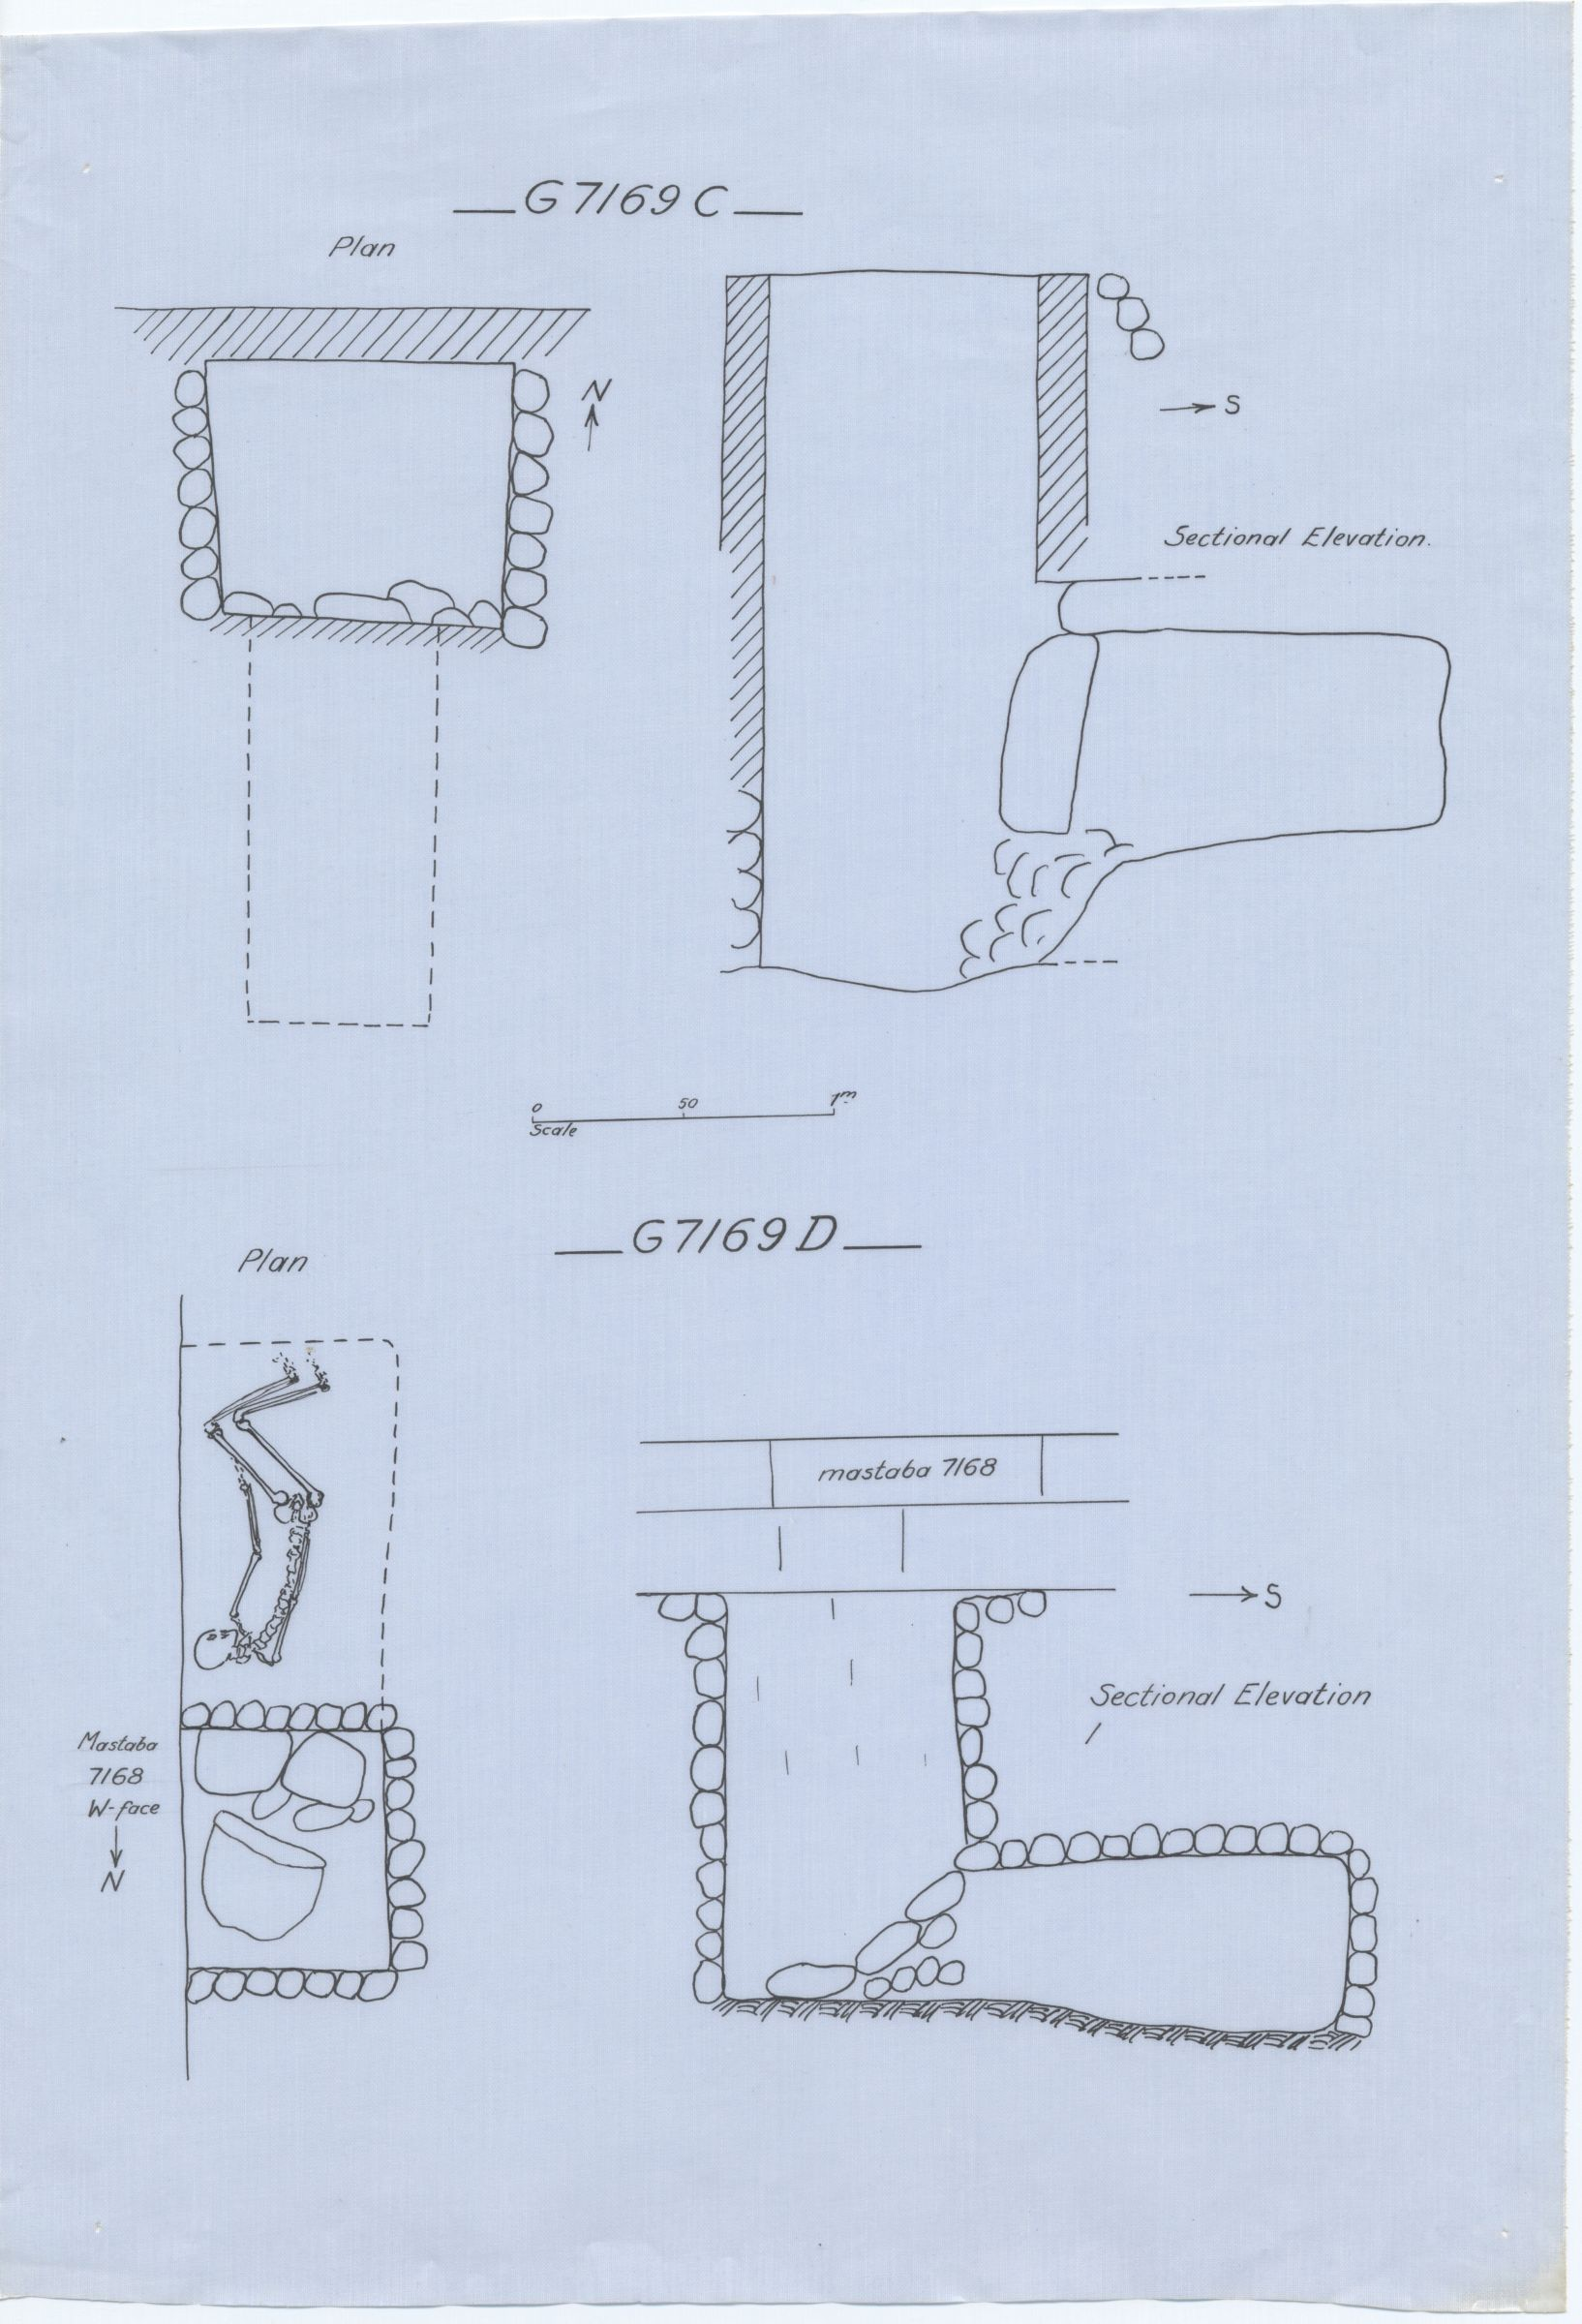 Maps and plans: G 7169, Shaft C and D